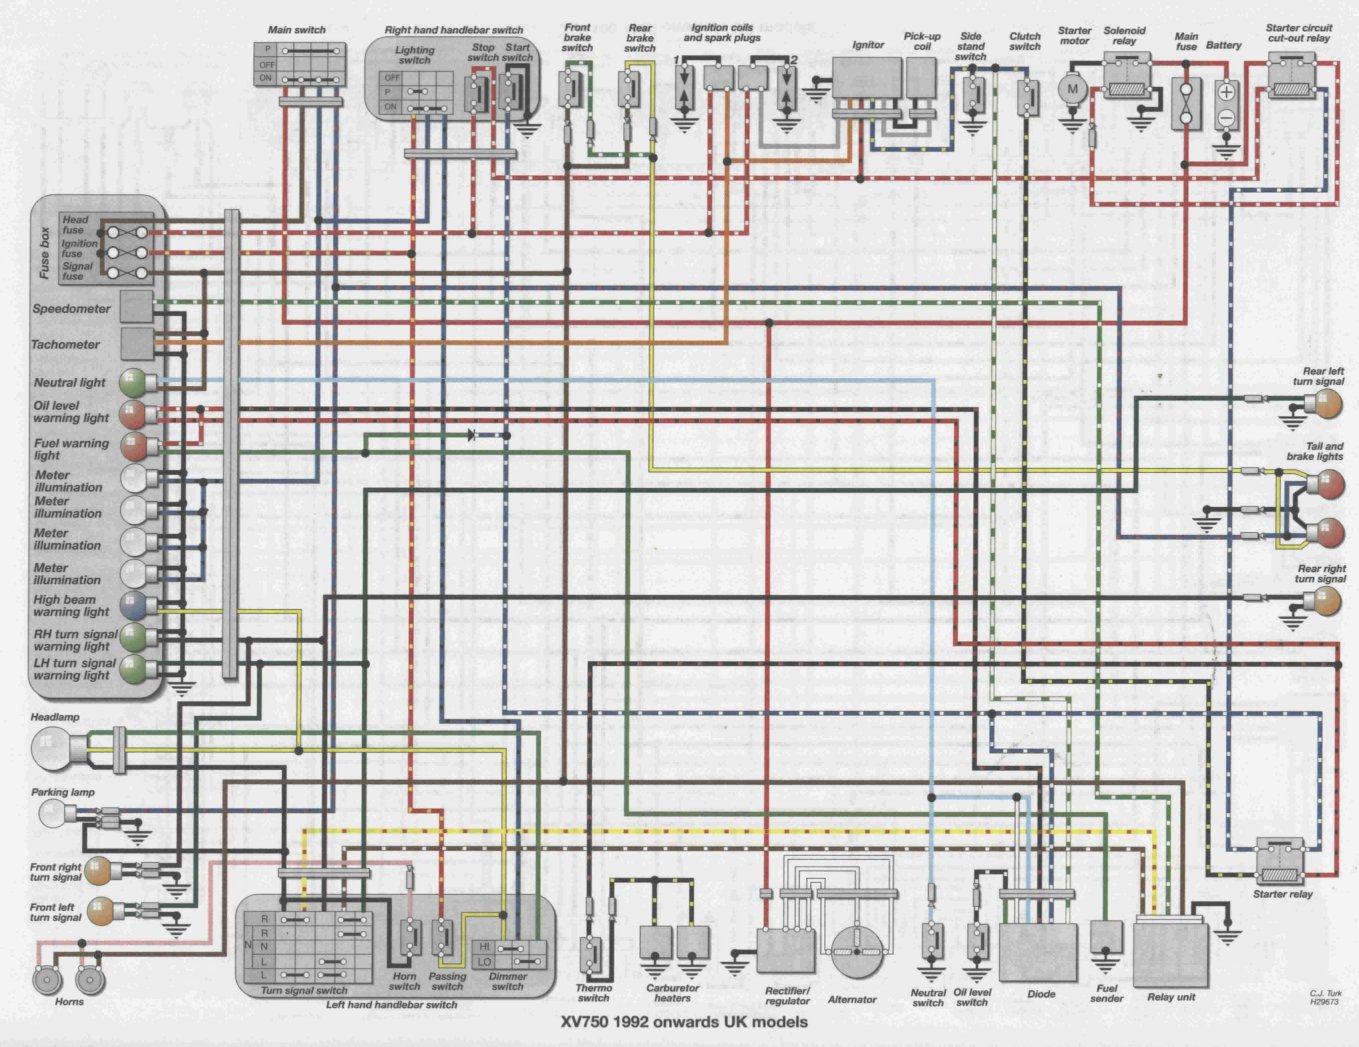 wiring diagram xj 600 free download wiring diagram xwiaw wiring yamaha venture free download wiring diagram index of wiring of wiring diagram xj 600 on xwiaw